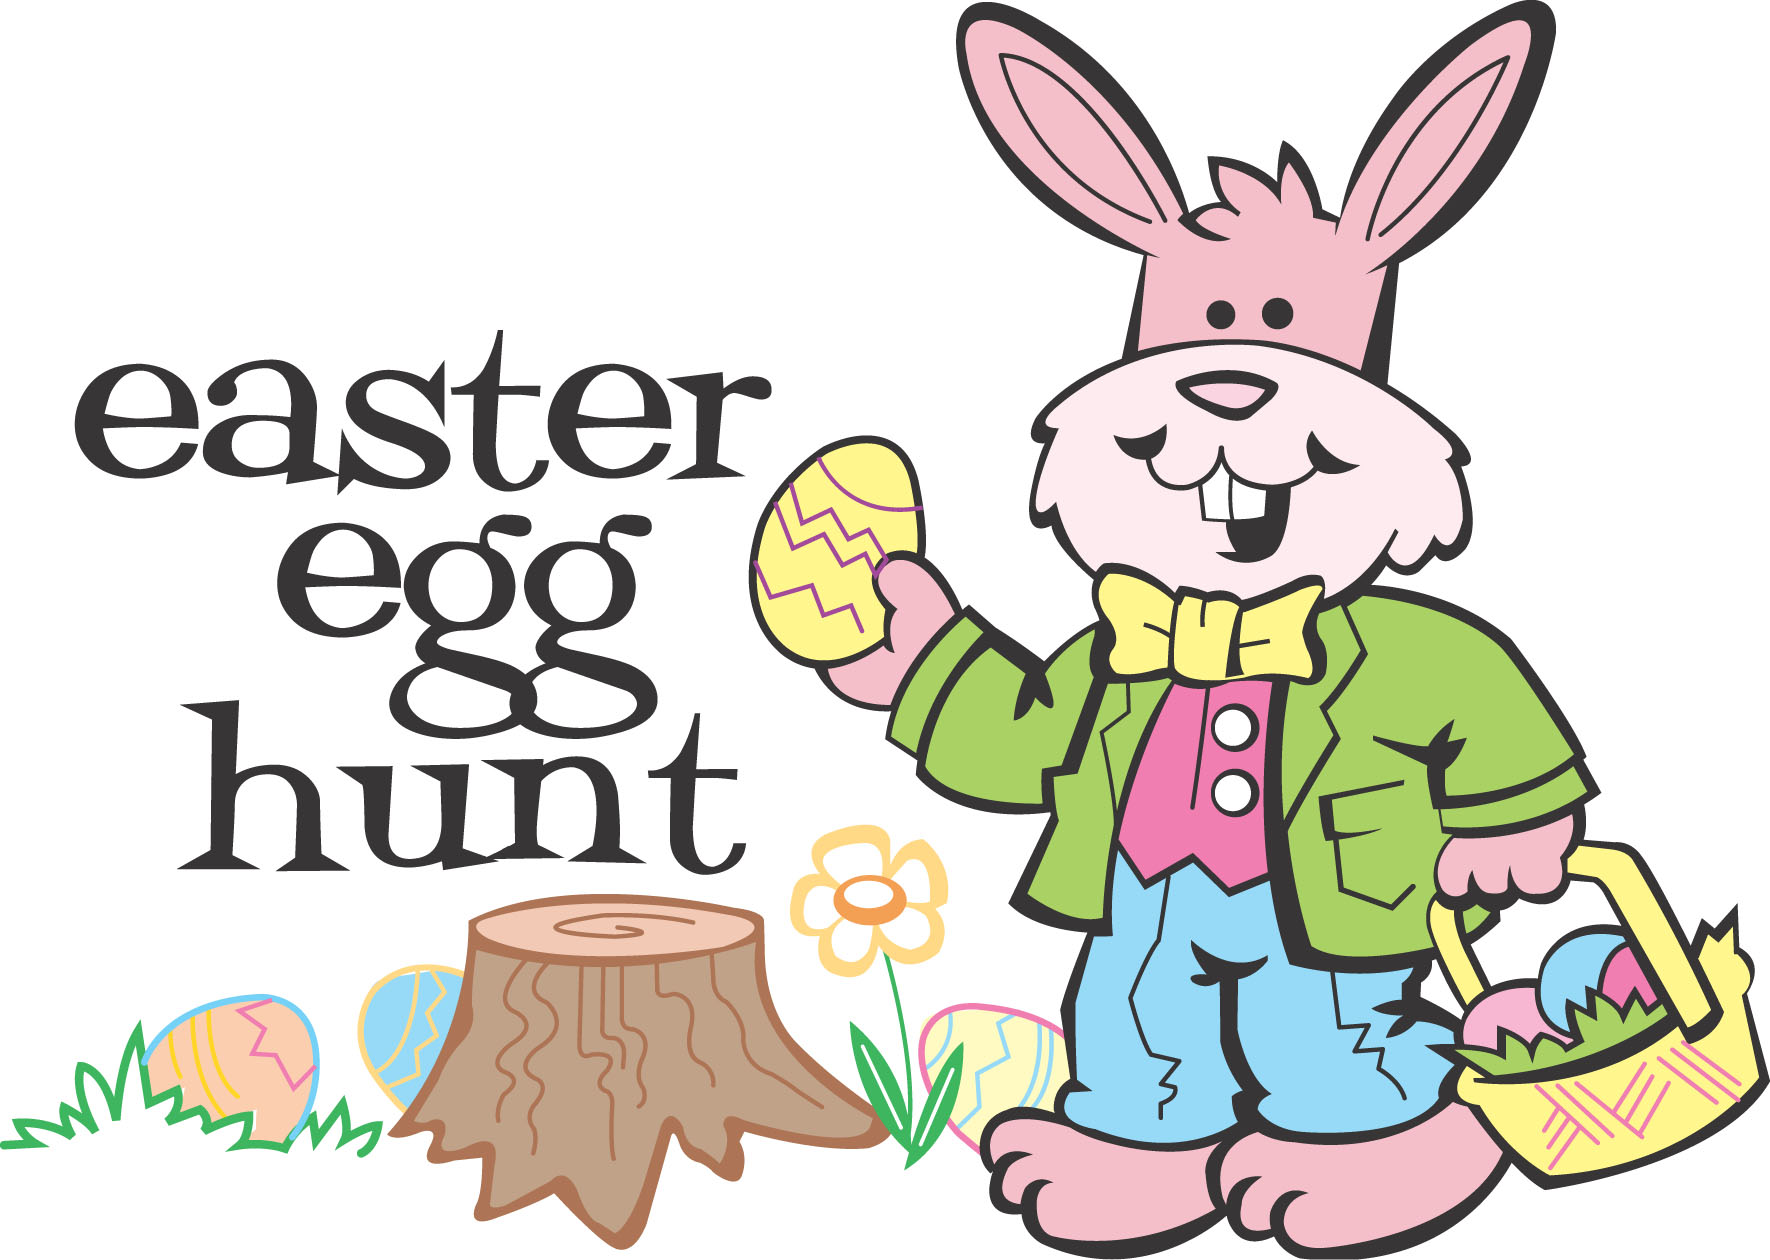 See clipart easter egg hunt #8